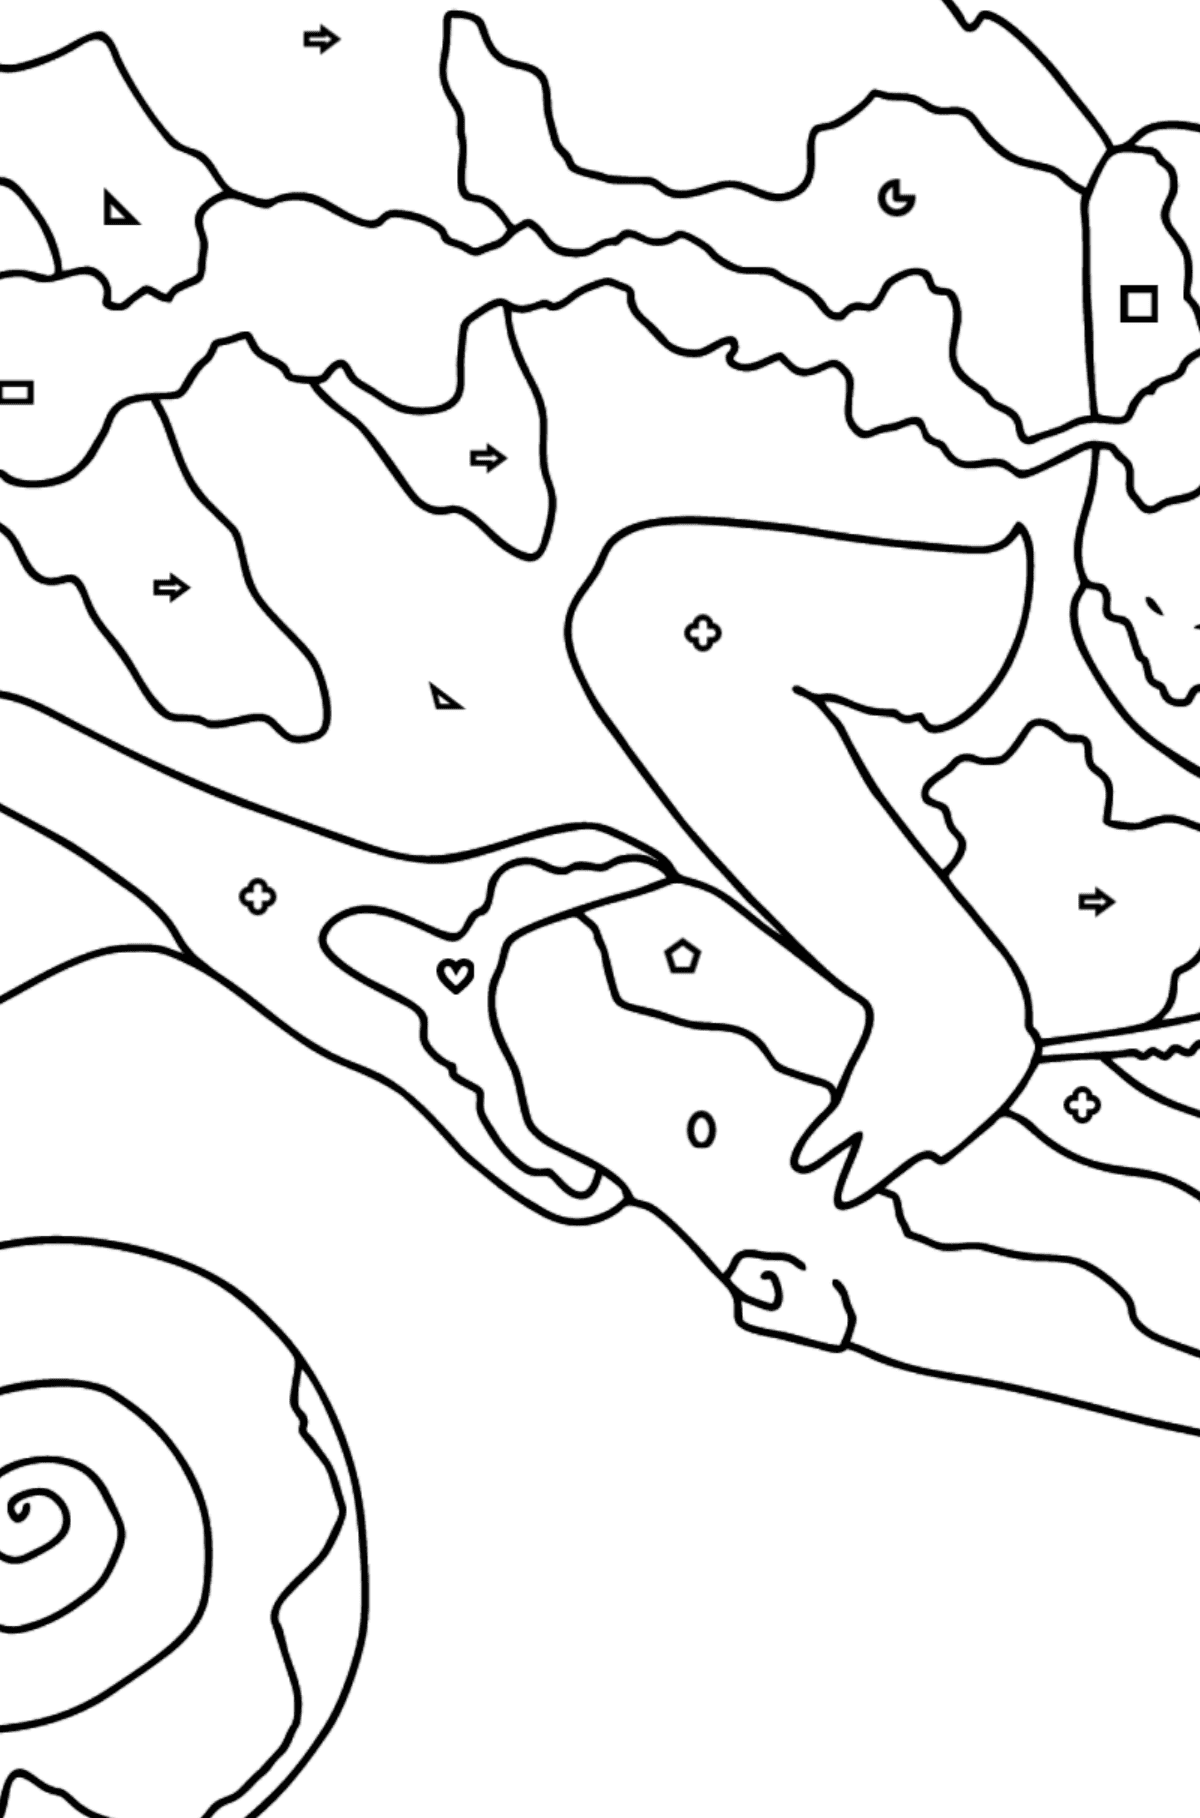 Coloring Page - A Multicolored Chameleon - Coloring by Geometric Shapes for Kids